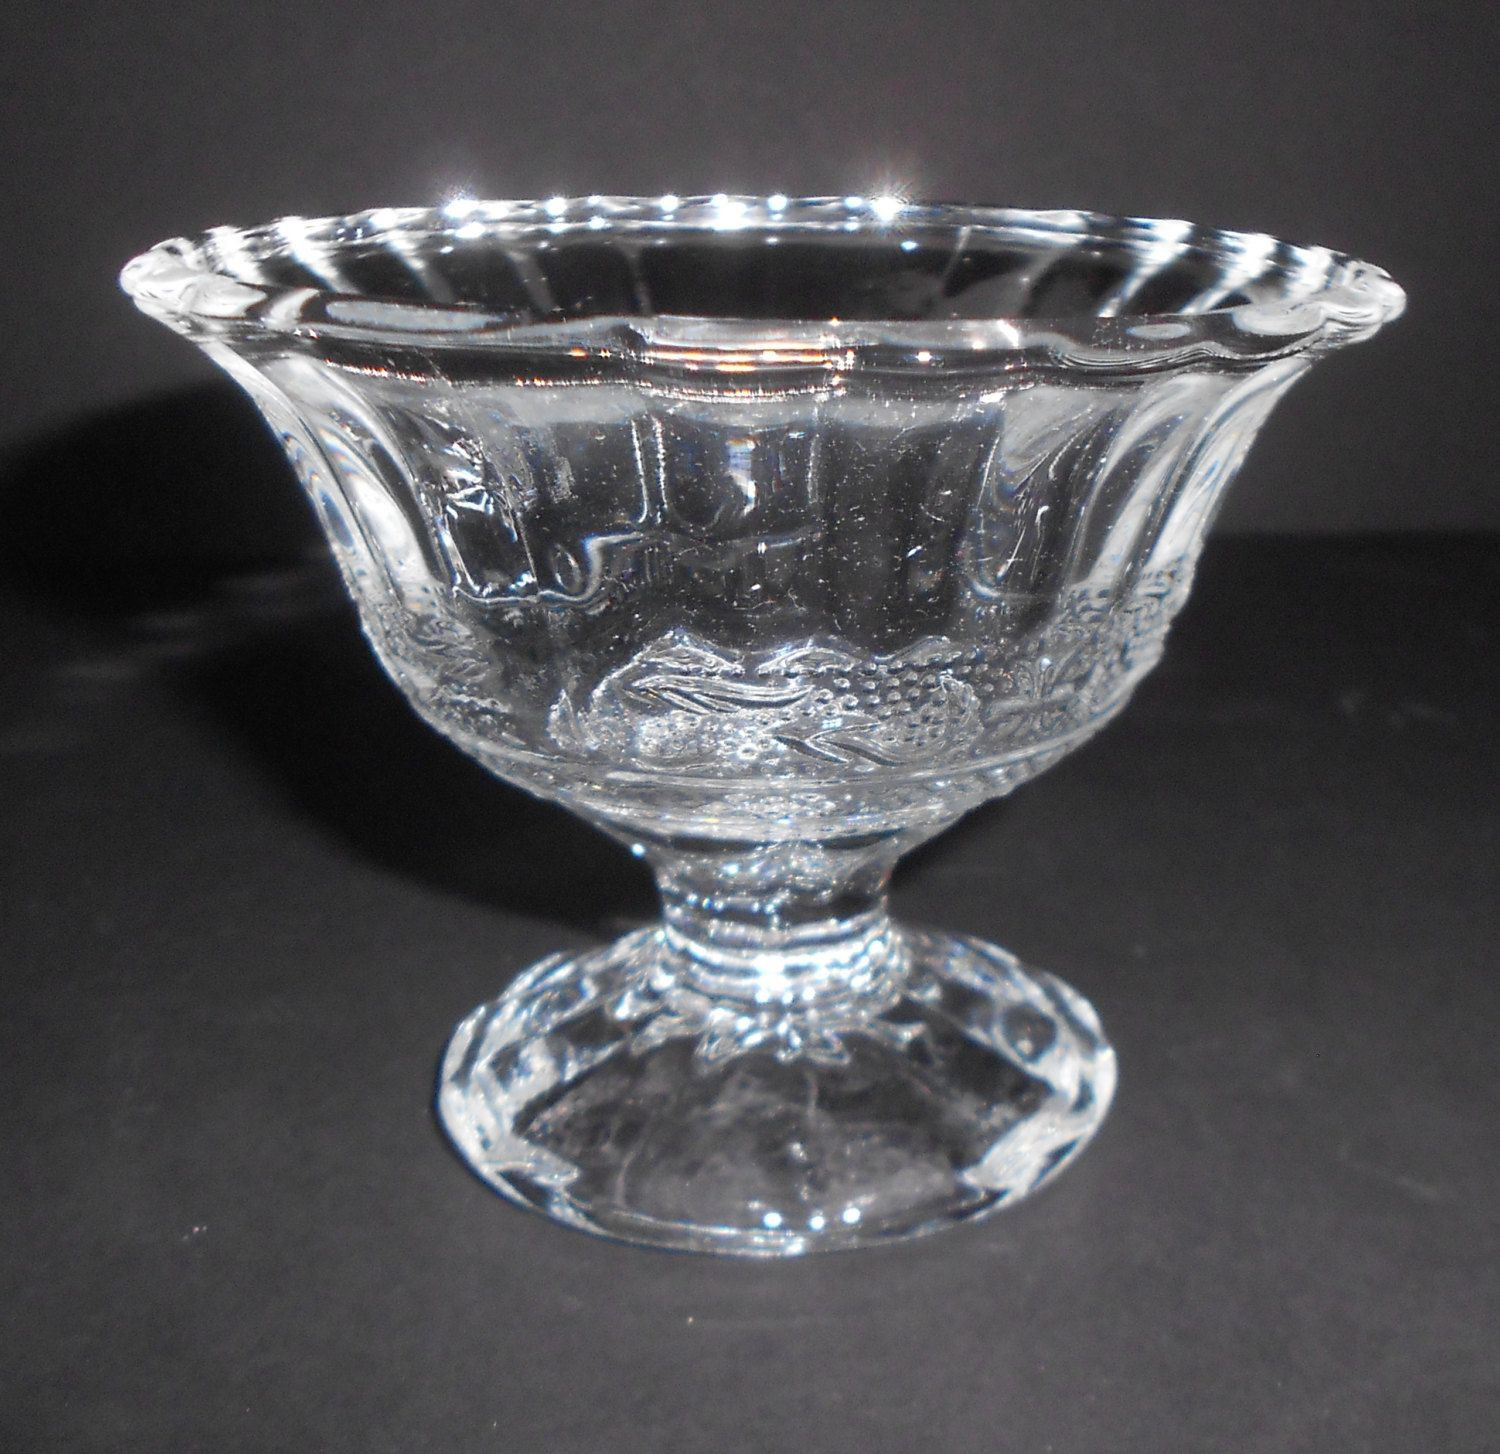 ribbed mercury glass vase of glass pedestal vases collection sherbet cup dessert cup dessert bowl regarding glass pedestal vases collection sherbet cup dessert cup dessert bowl pedestal base clear